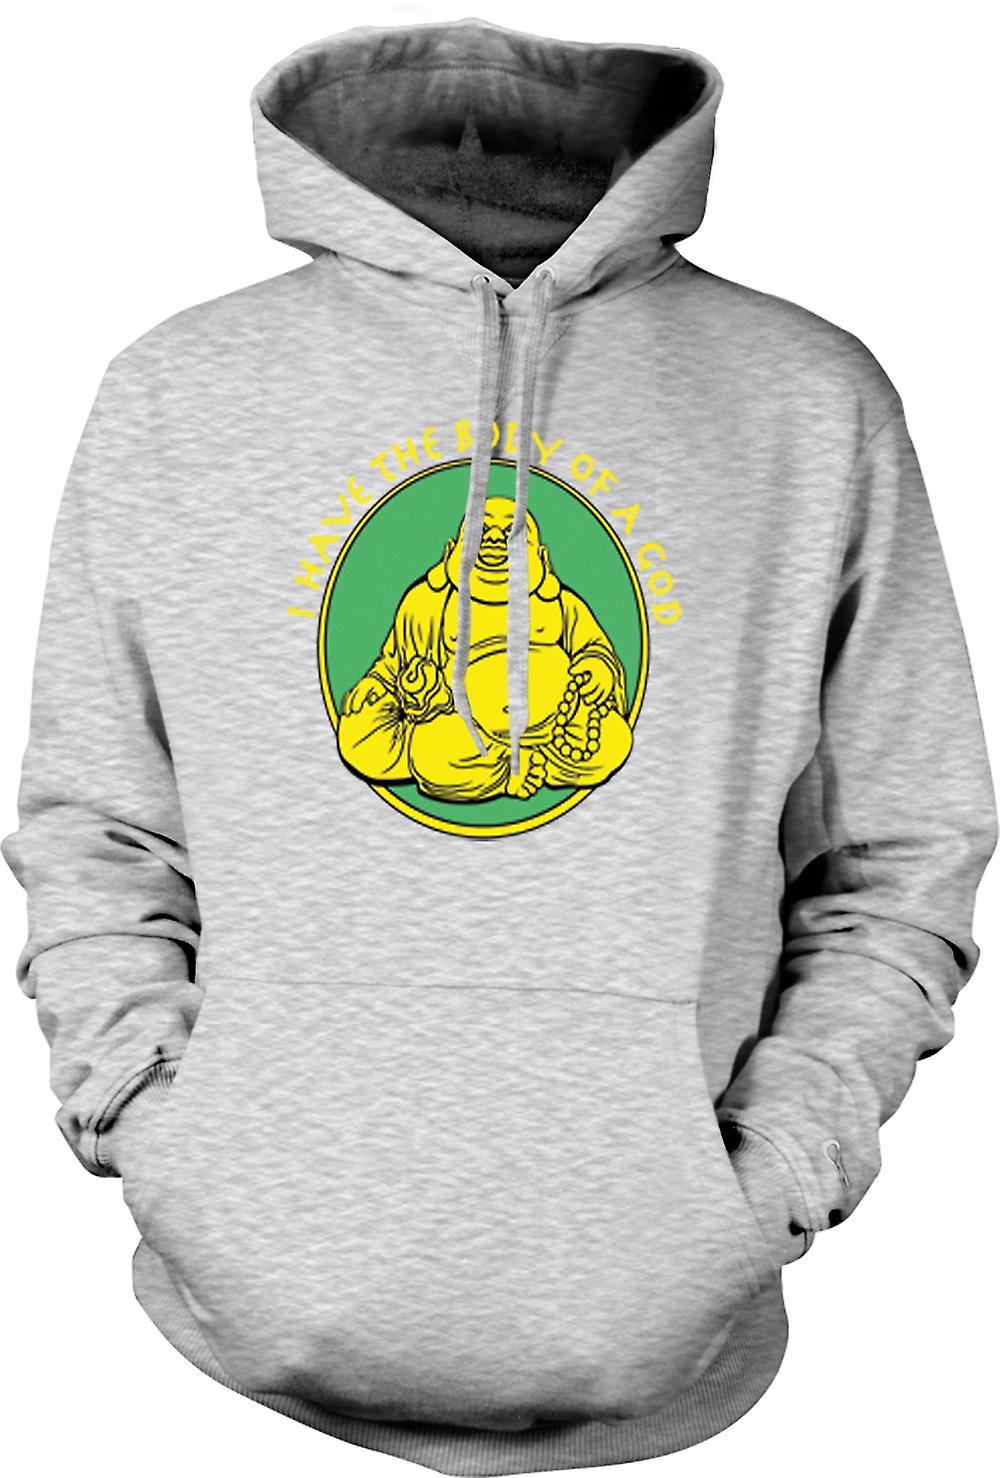 Mens Hoodie - I Have The Body Of A God - Golden Buddah